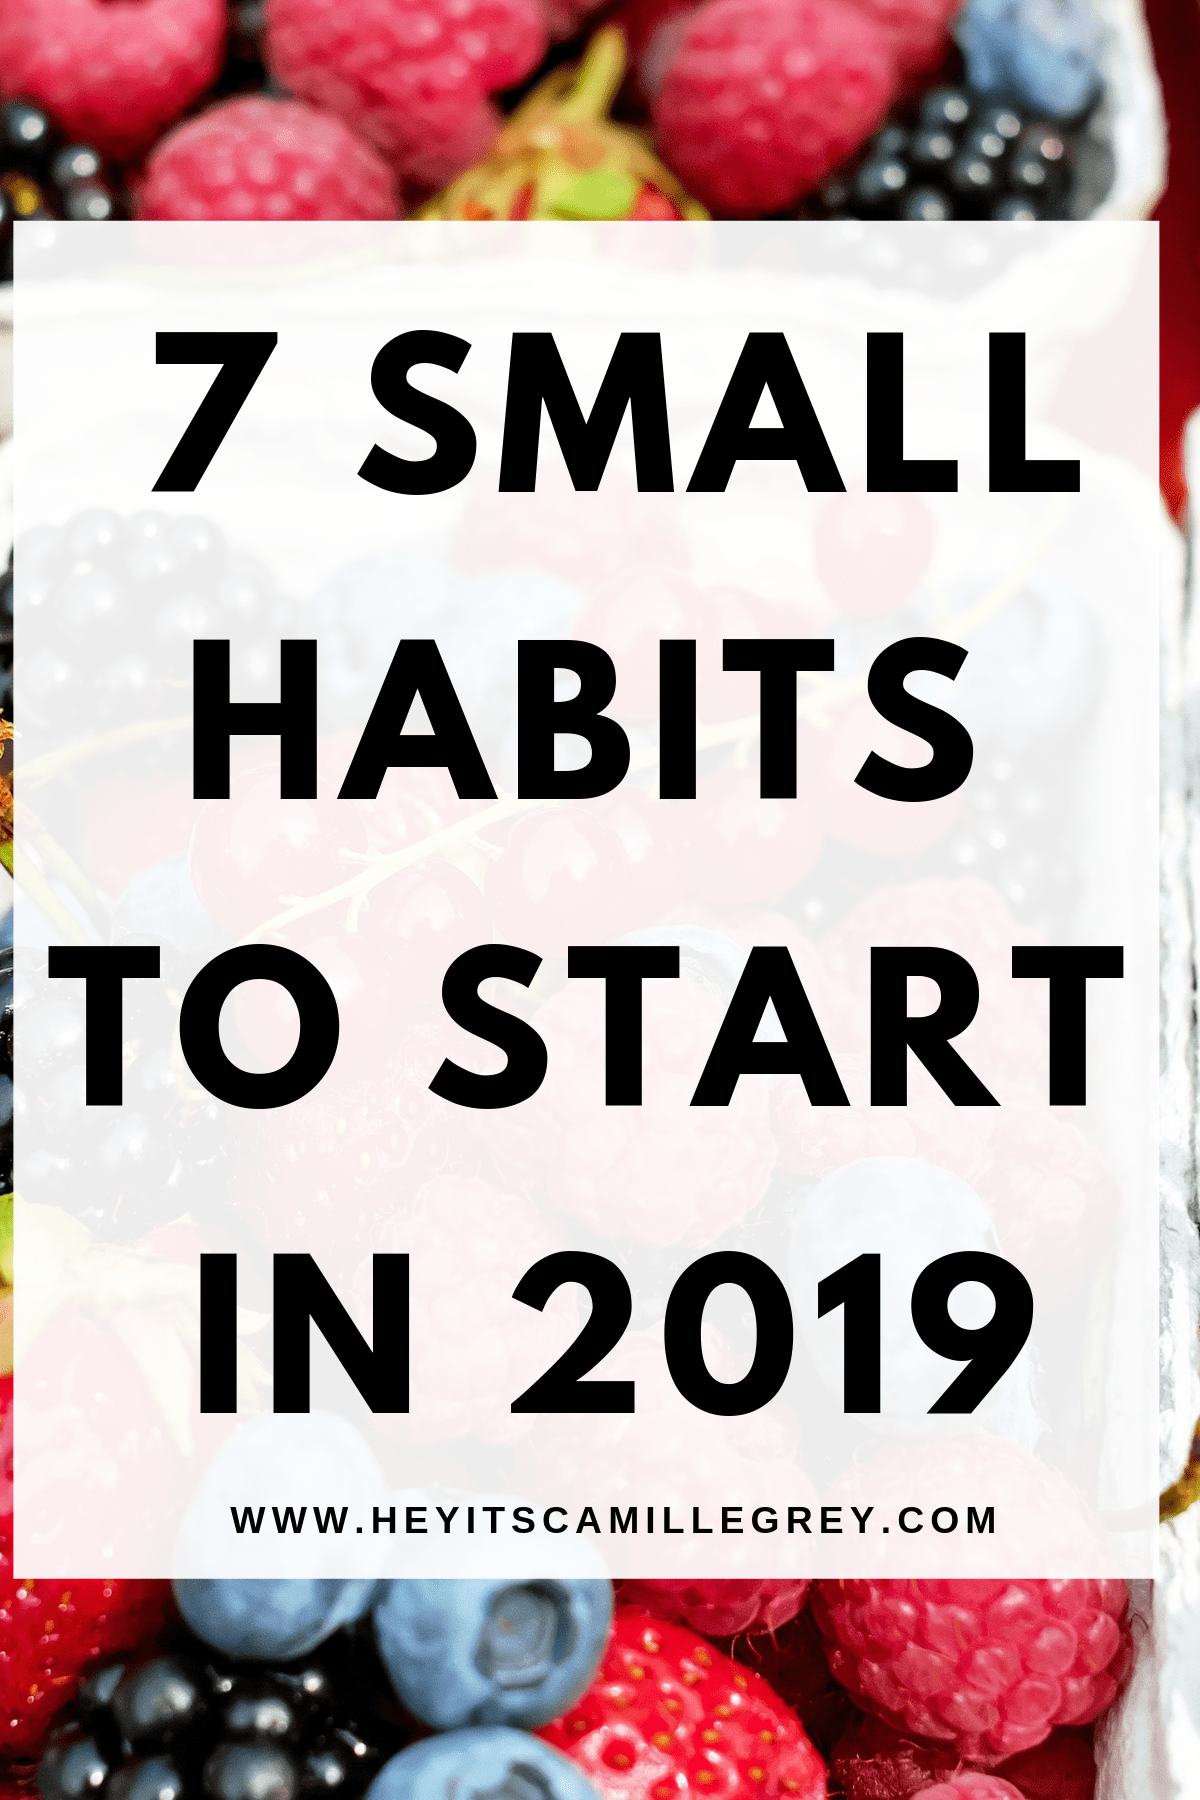 7 Small Habits to Start in 2019 | Hey Its Camille Grey #habits #2019 #positivity